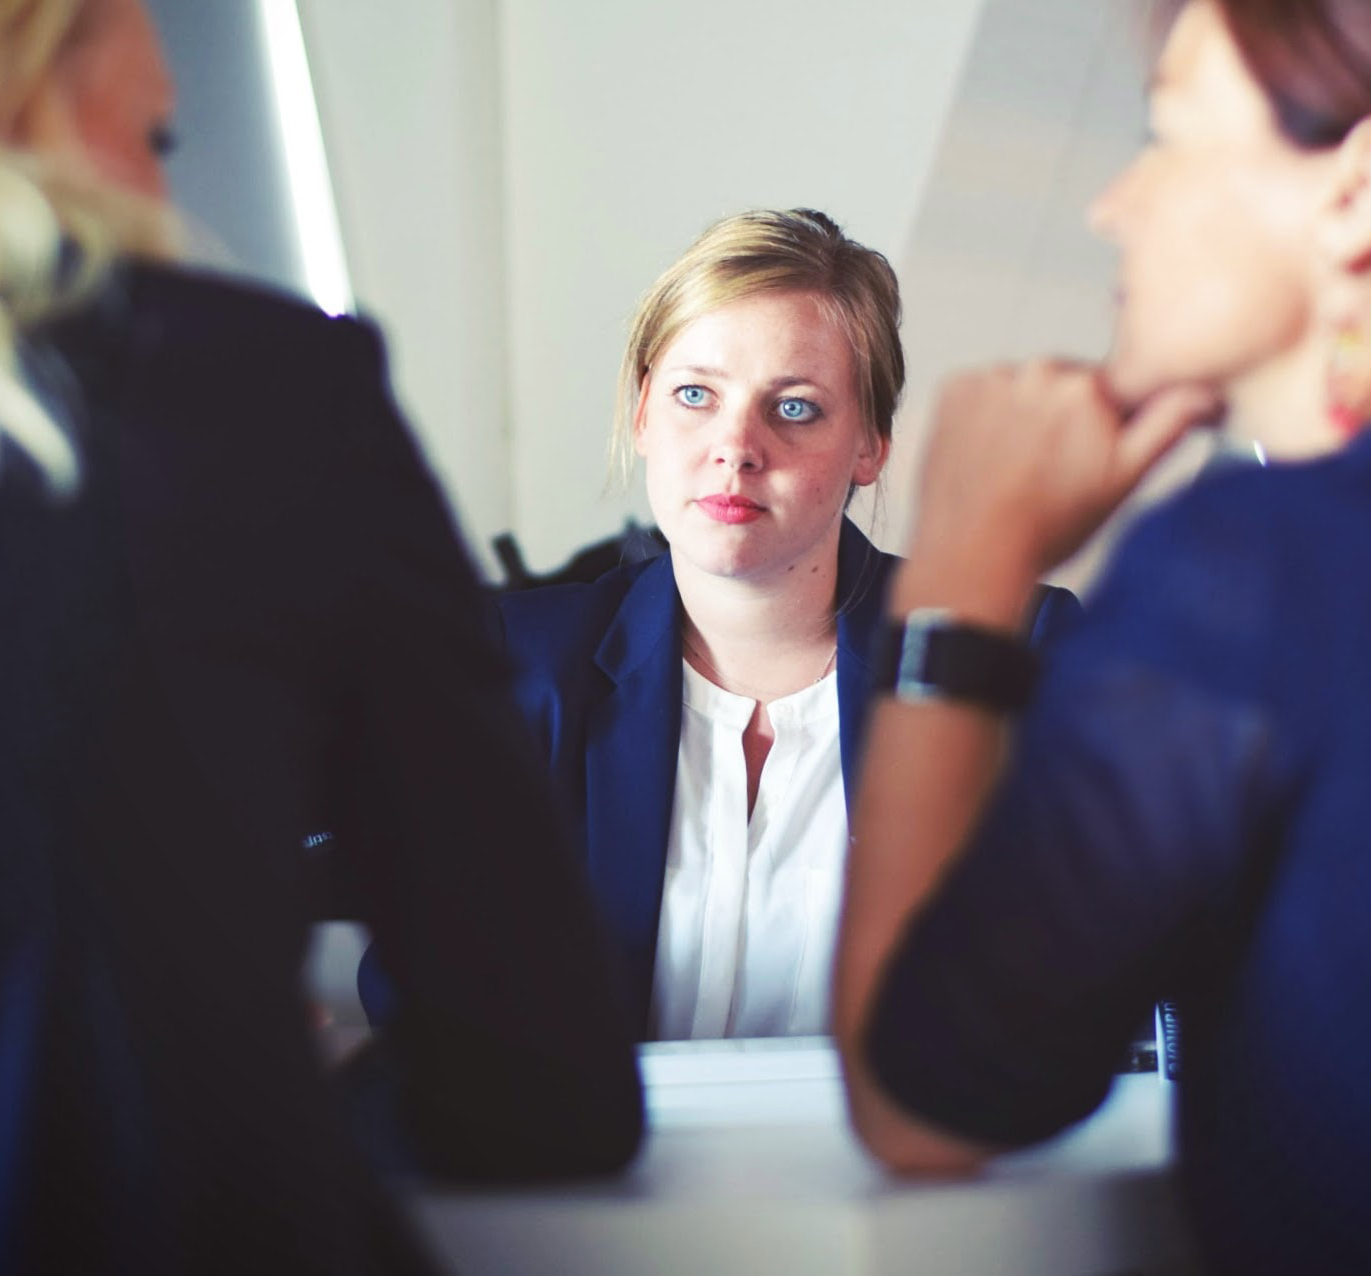 A woman looking across a table in the workplace at two women